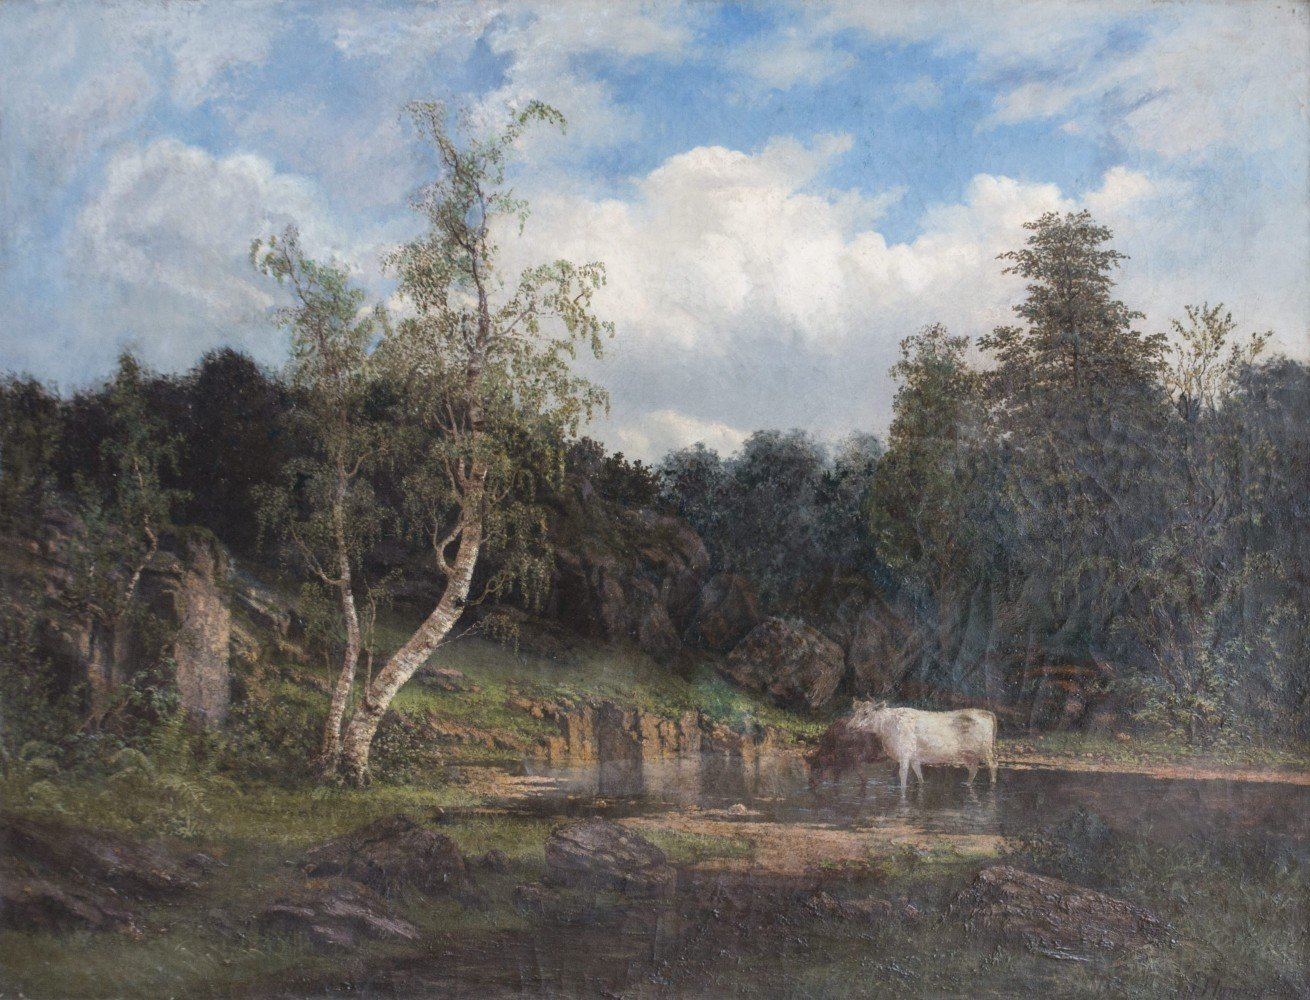 19th Century American Landscape with Cows